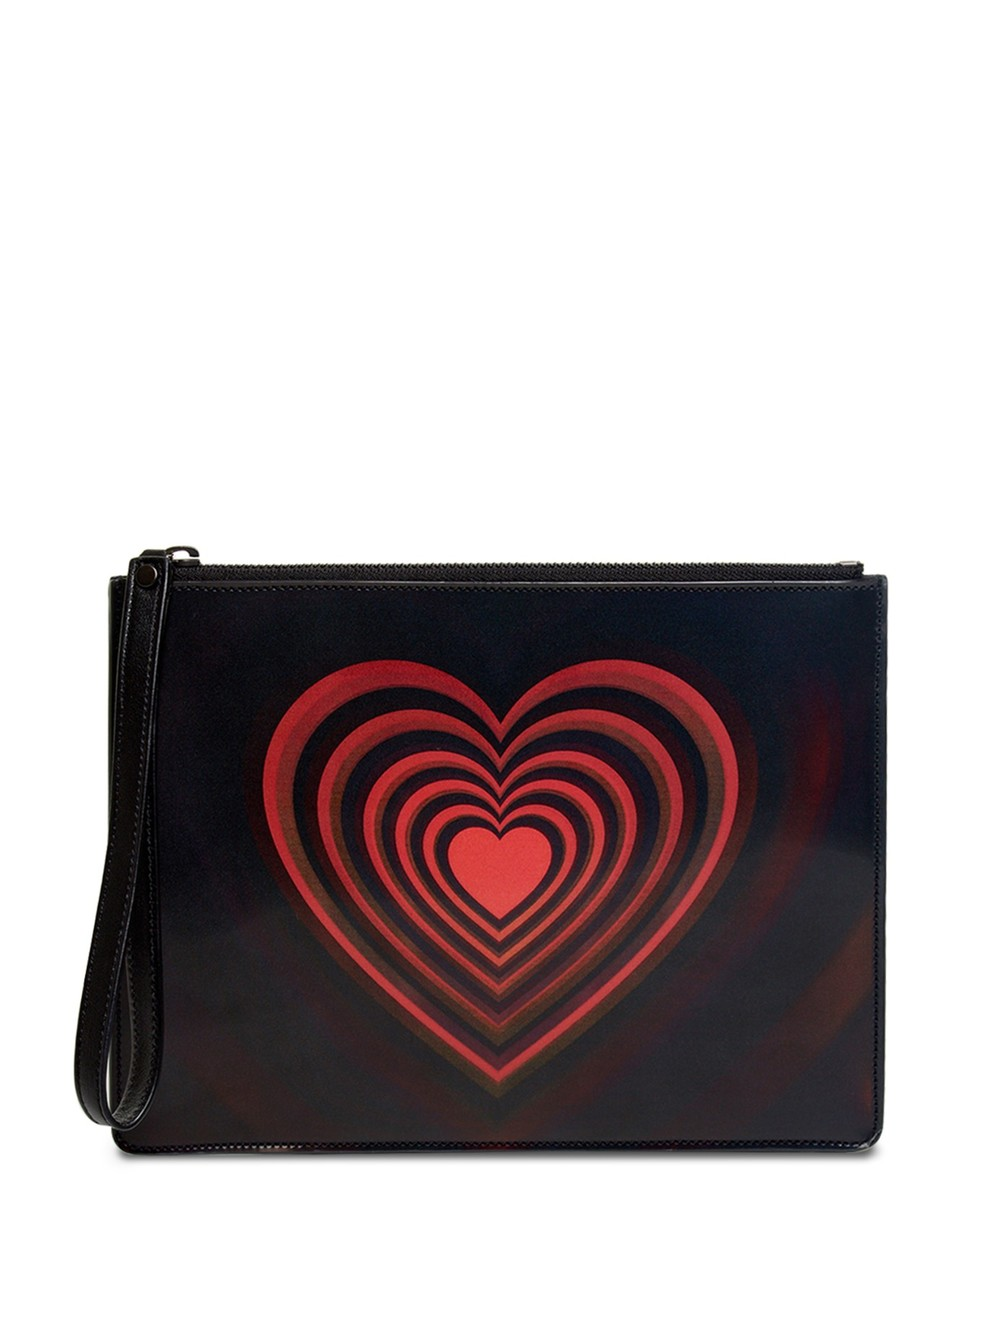 Leather pouch - £350, Christopher Kane